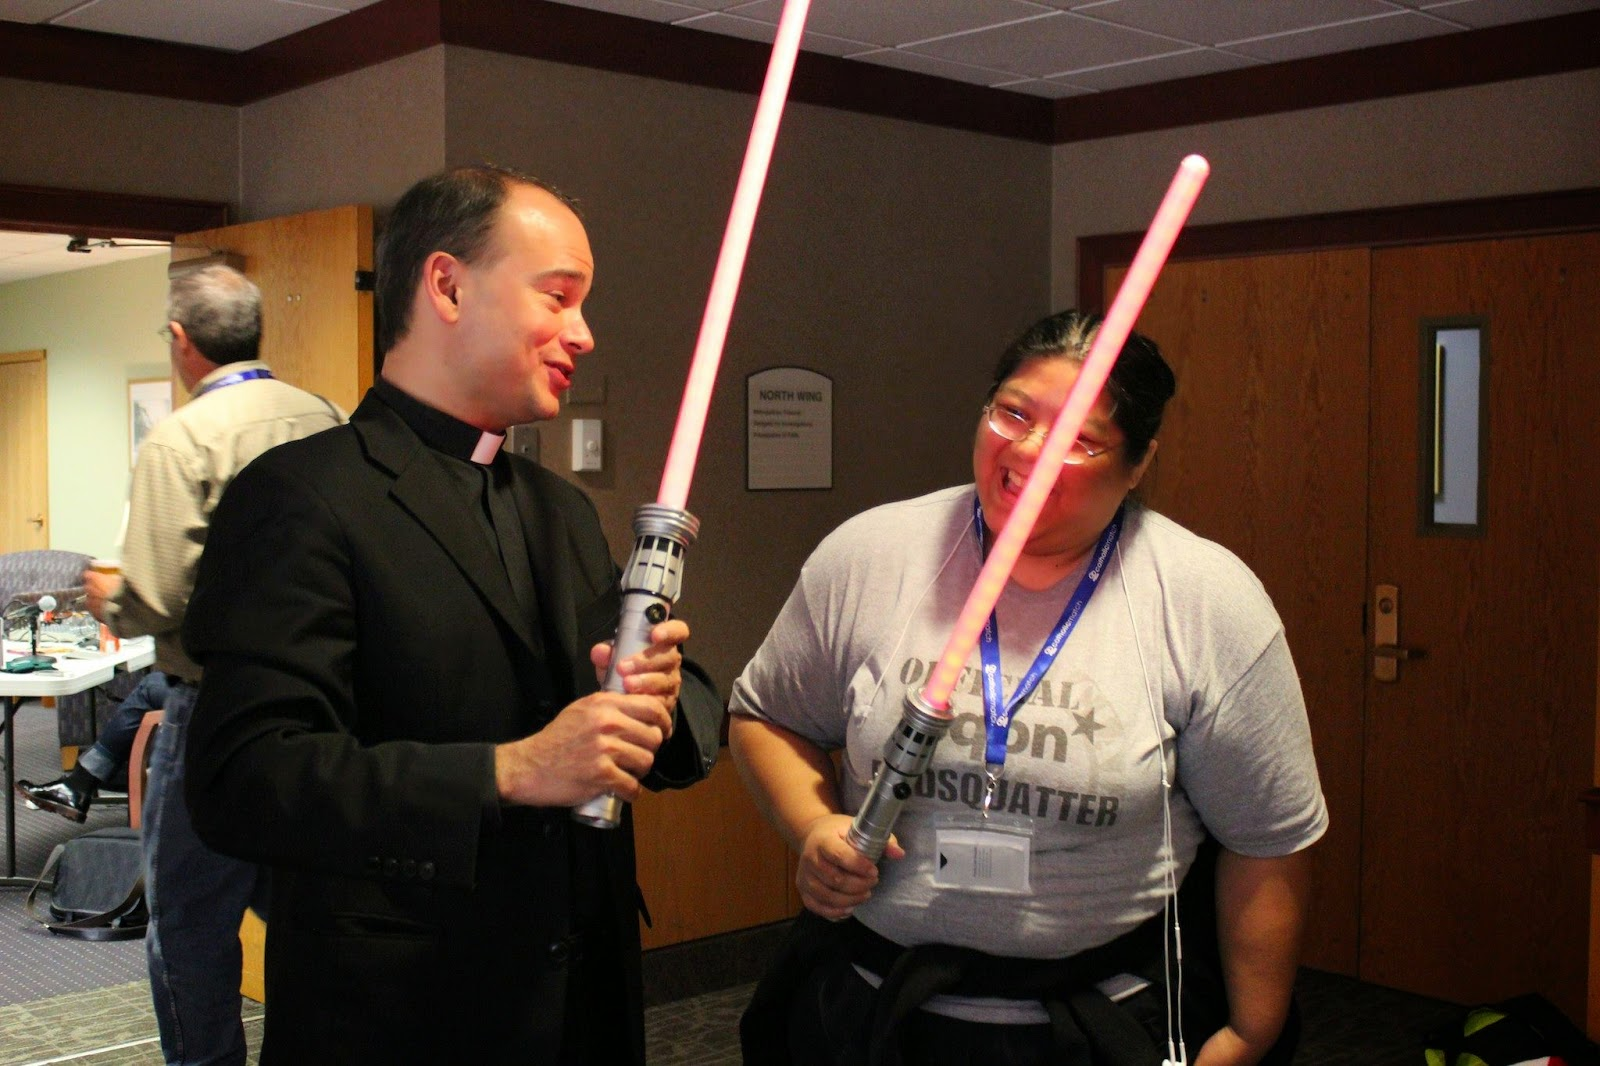 Fr Roderick And Me At The Cnmc In Boston, October 2010 Photo By Fr  Darryl Millette